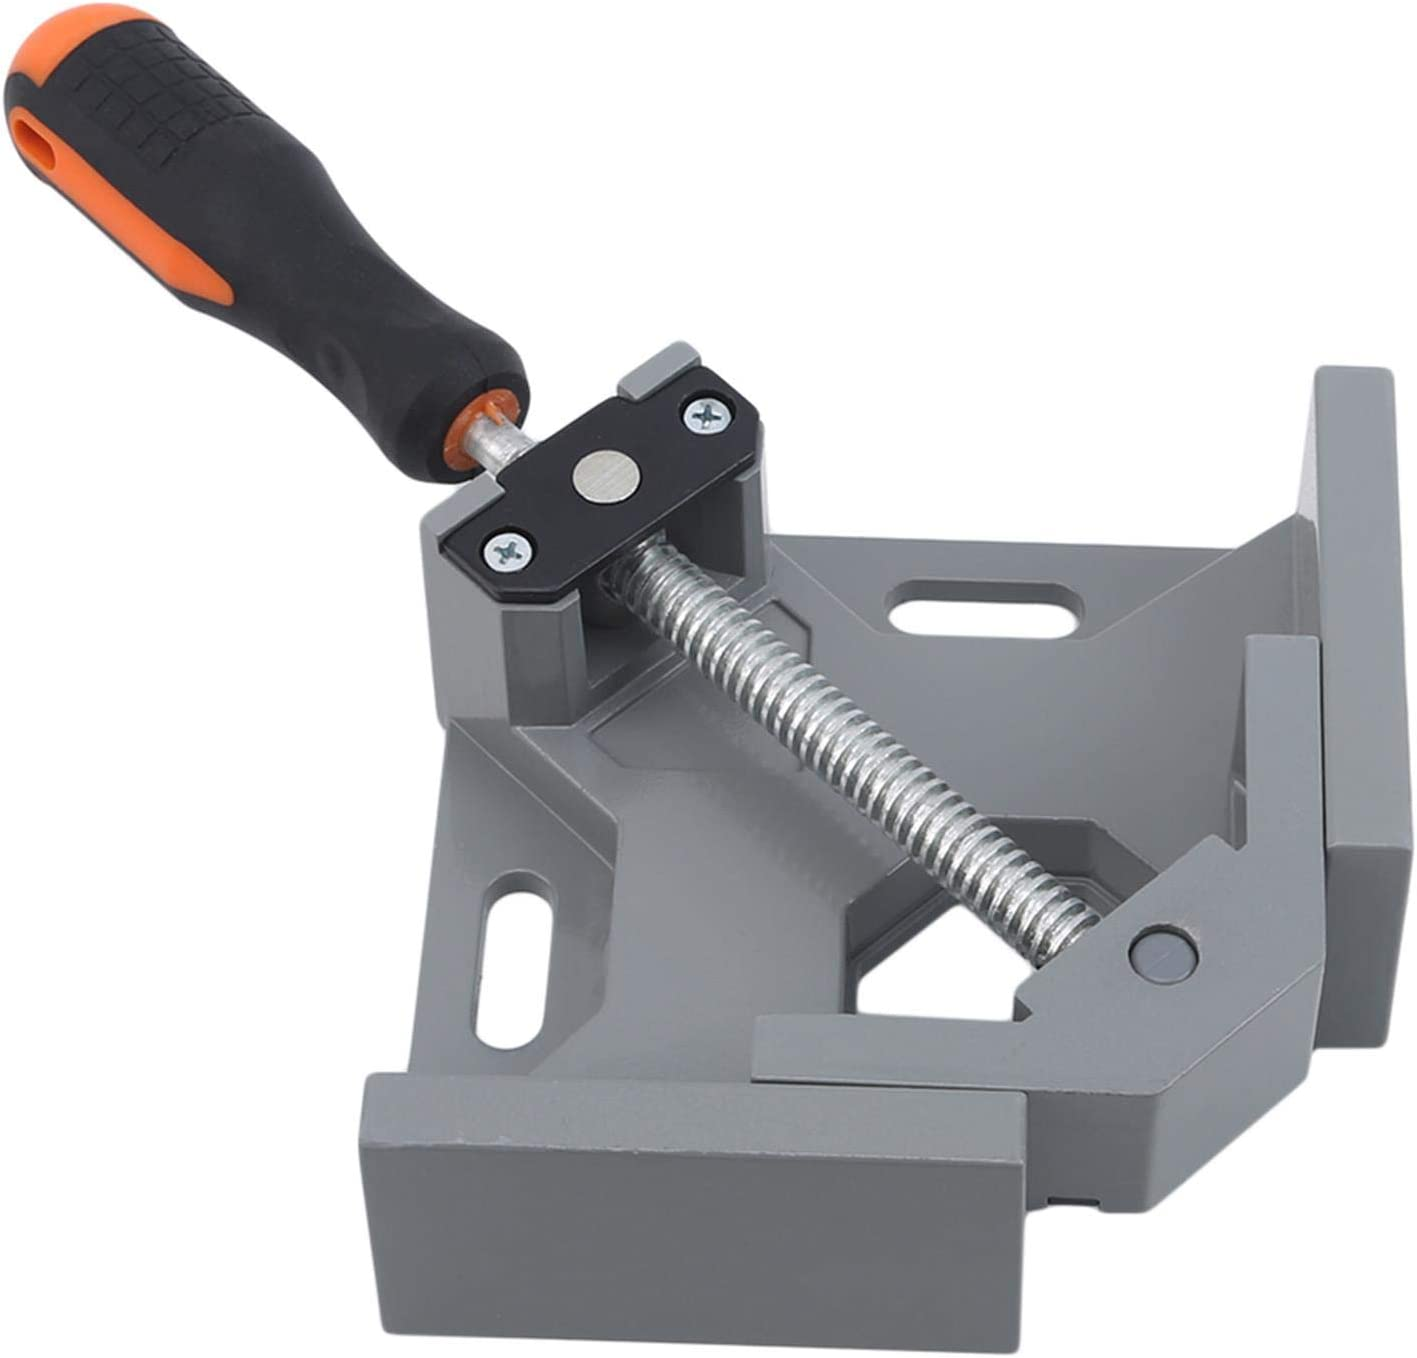 SOURBA Sales Popular product for sale Welding Woodworking Tool Adjustable Vise Corner Clamps To